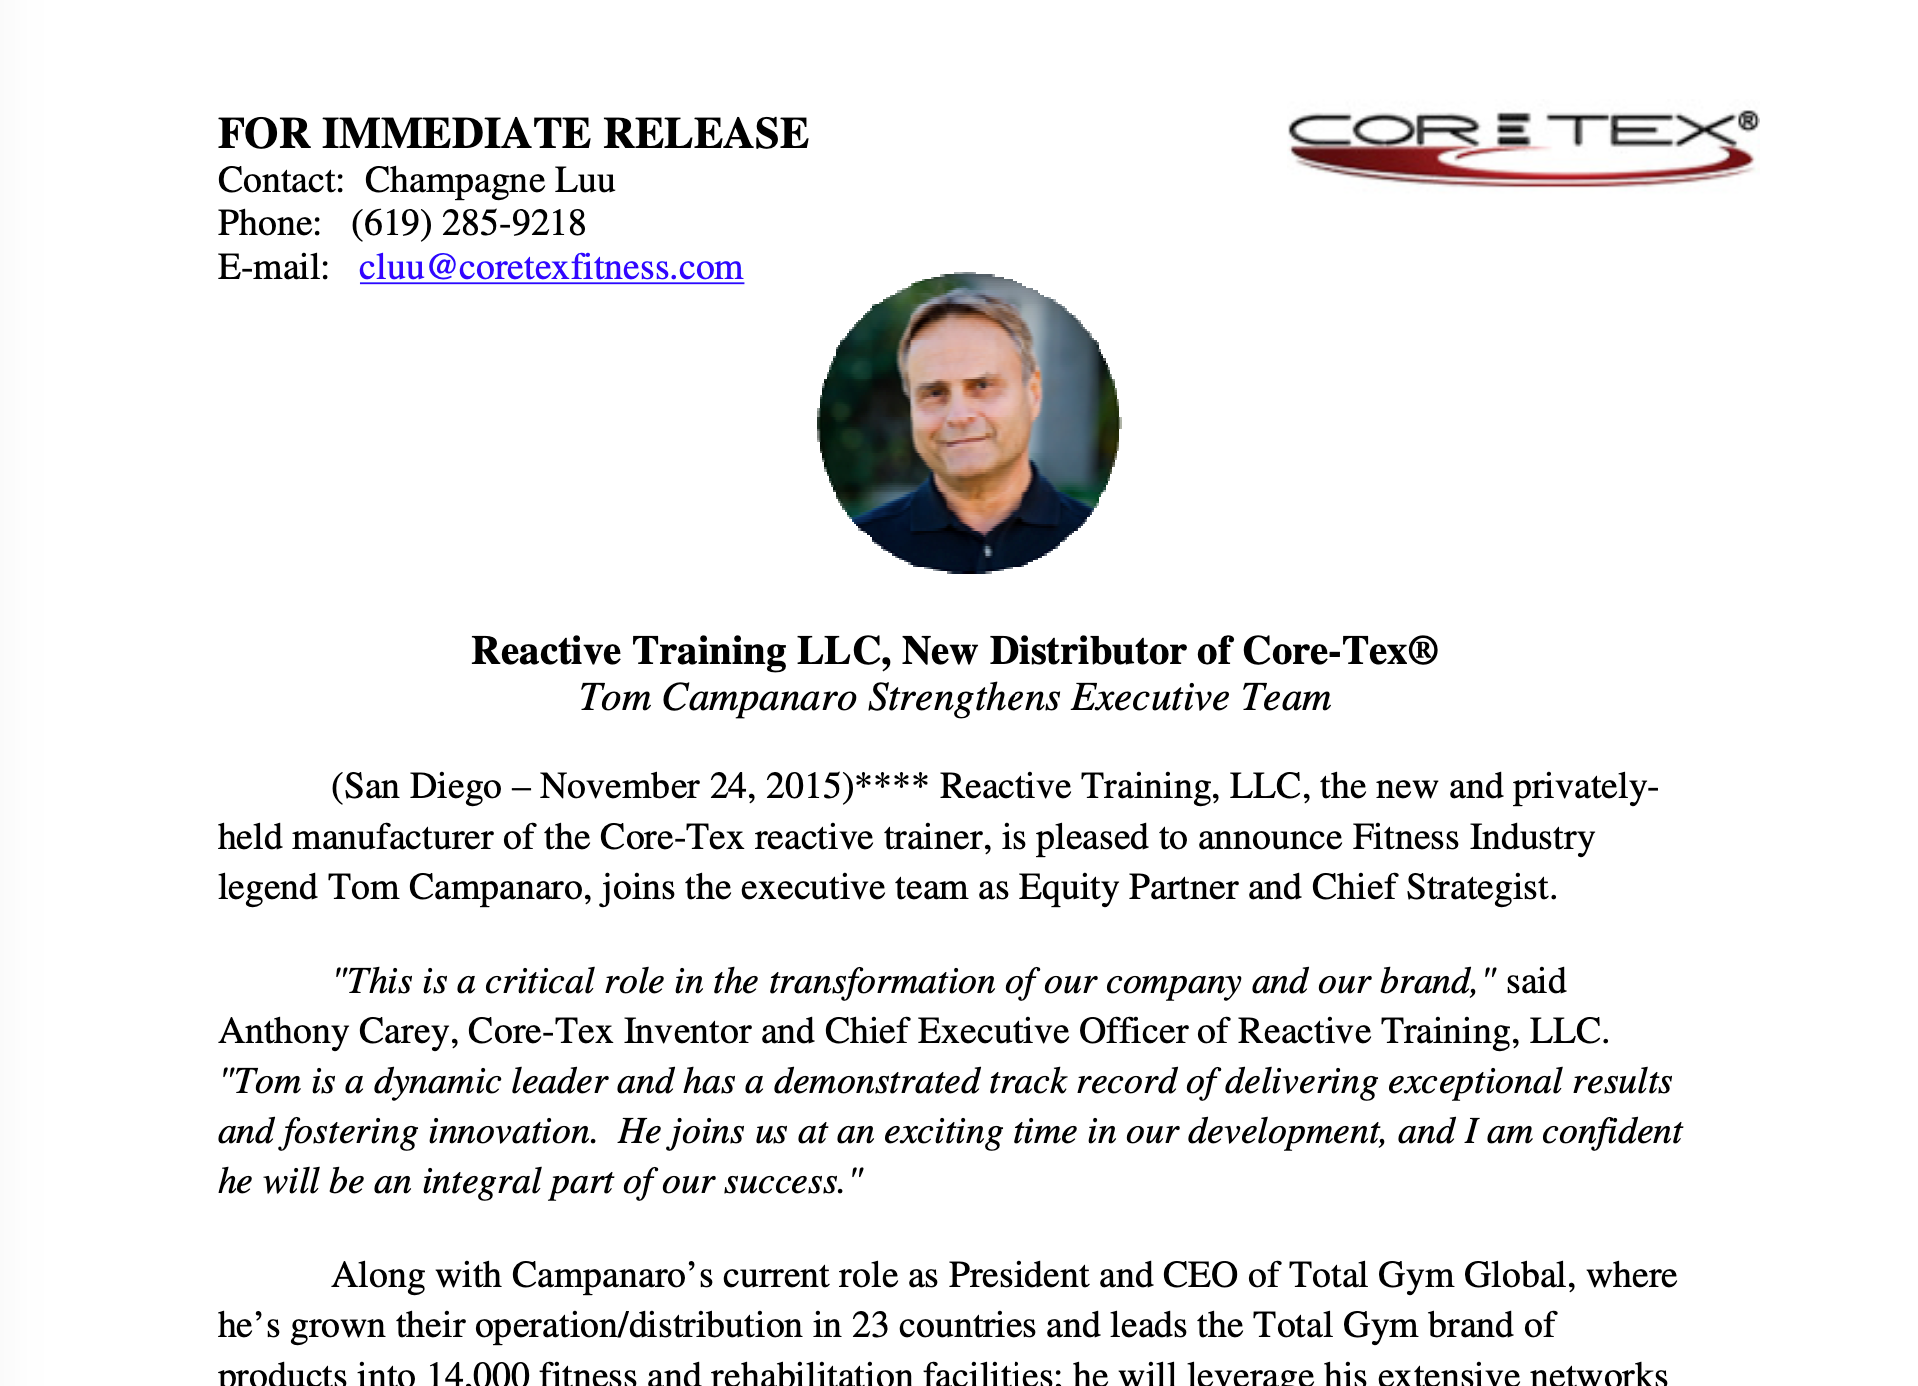 COMPANY PRESS RELEASE, NOVEMBER 24, 2015: Tom Campanaro Joins Reactive Training, LLC